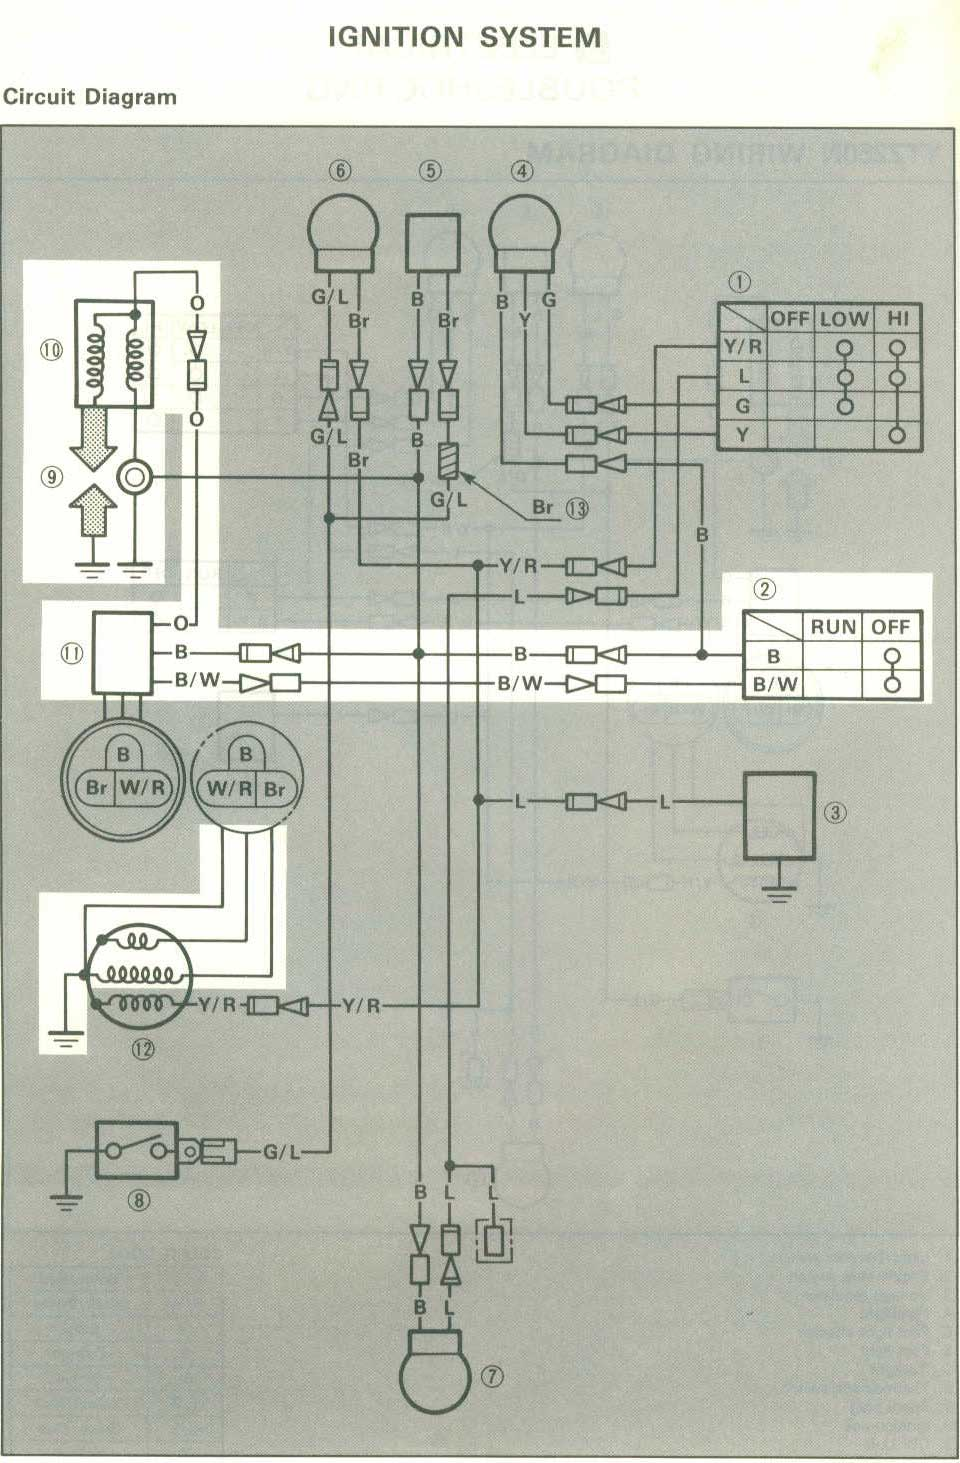 3 wheeler world tech help yamaha wiring diagrams rh 3wheelerworld com 1985  yamaha gas golf cart wiring diagram 1985 yamaha maxim 700 wiring diagram